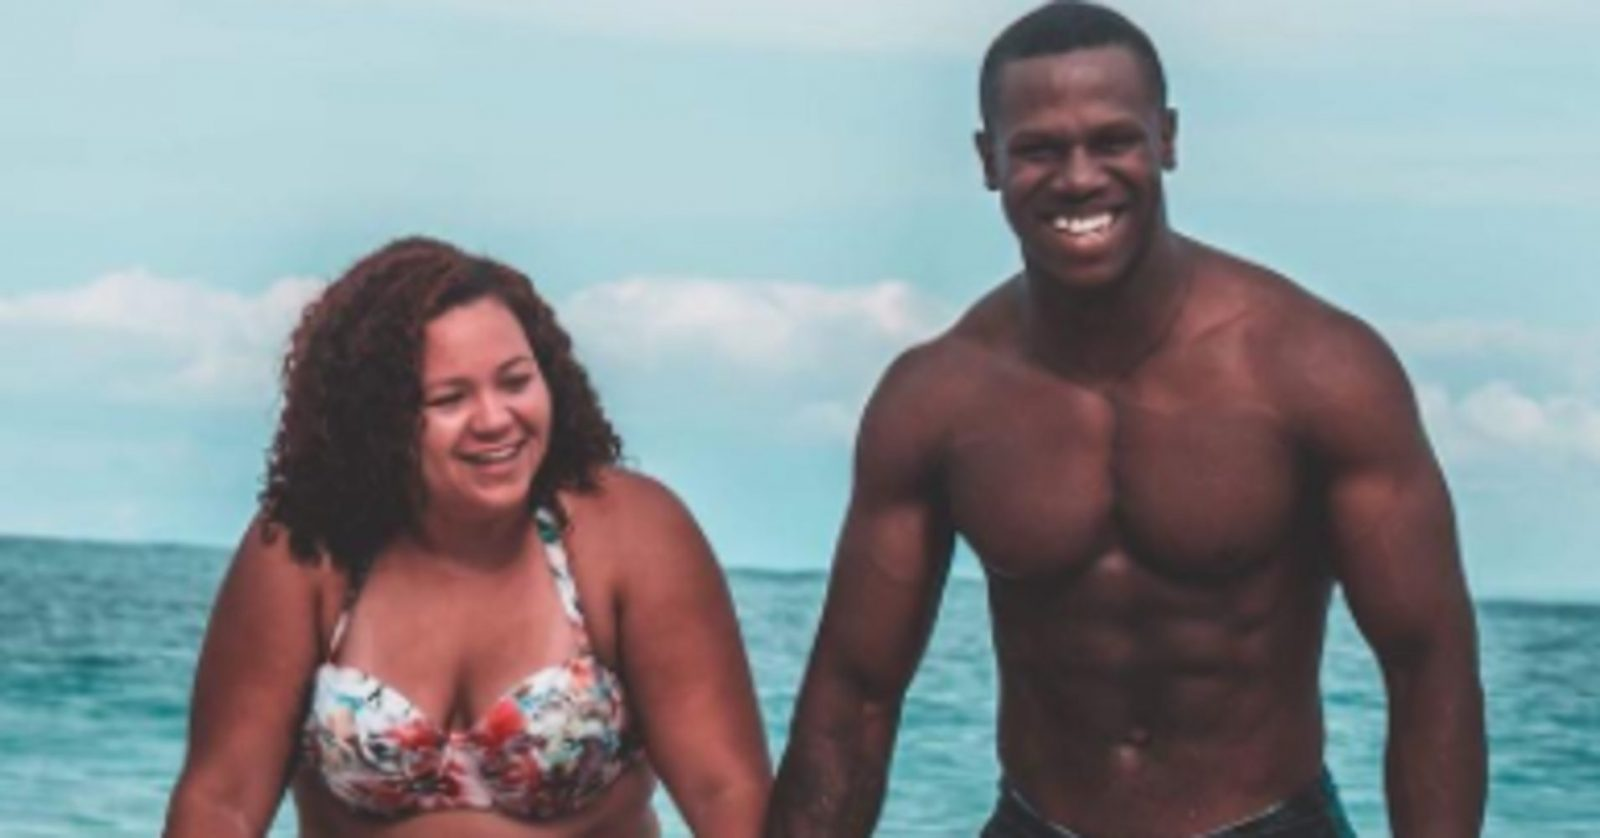 Couple's Bathing Suit Photo Is Going Viral For An Inspiring Reason